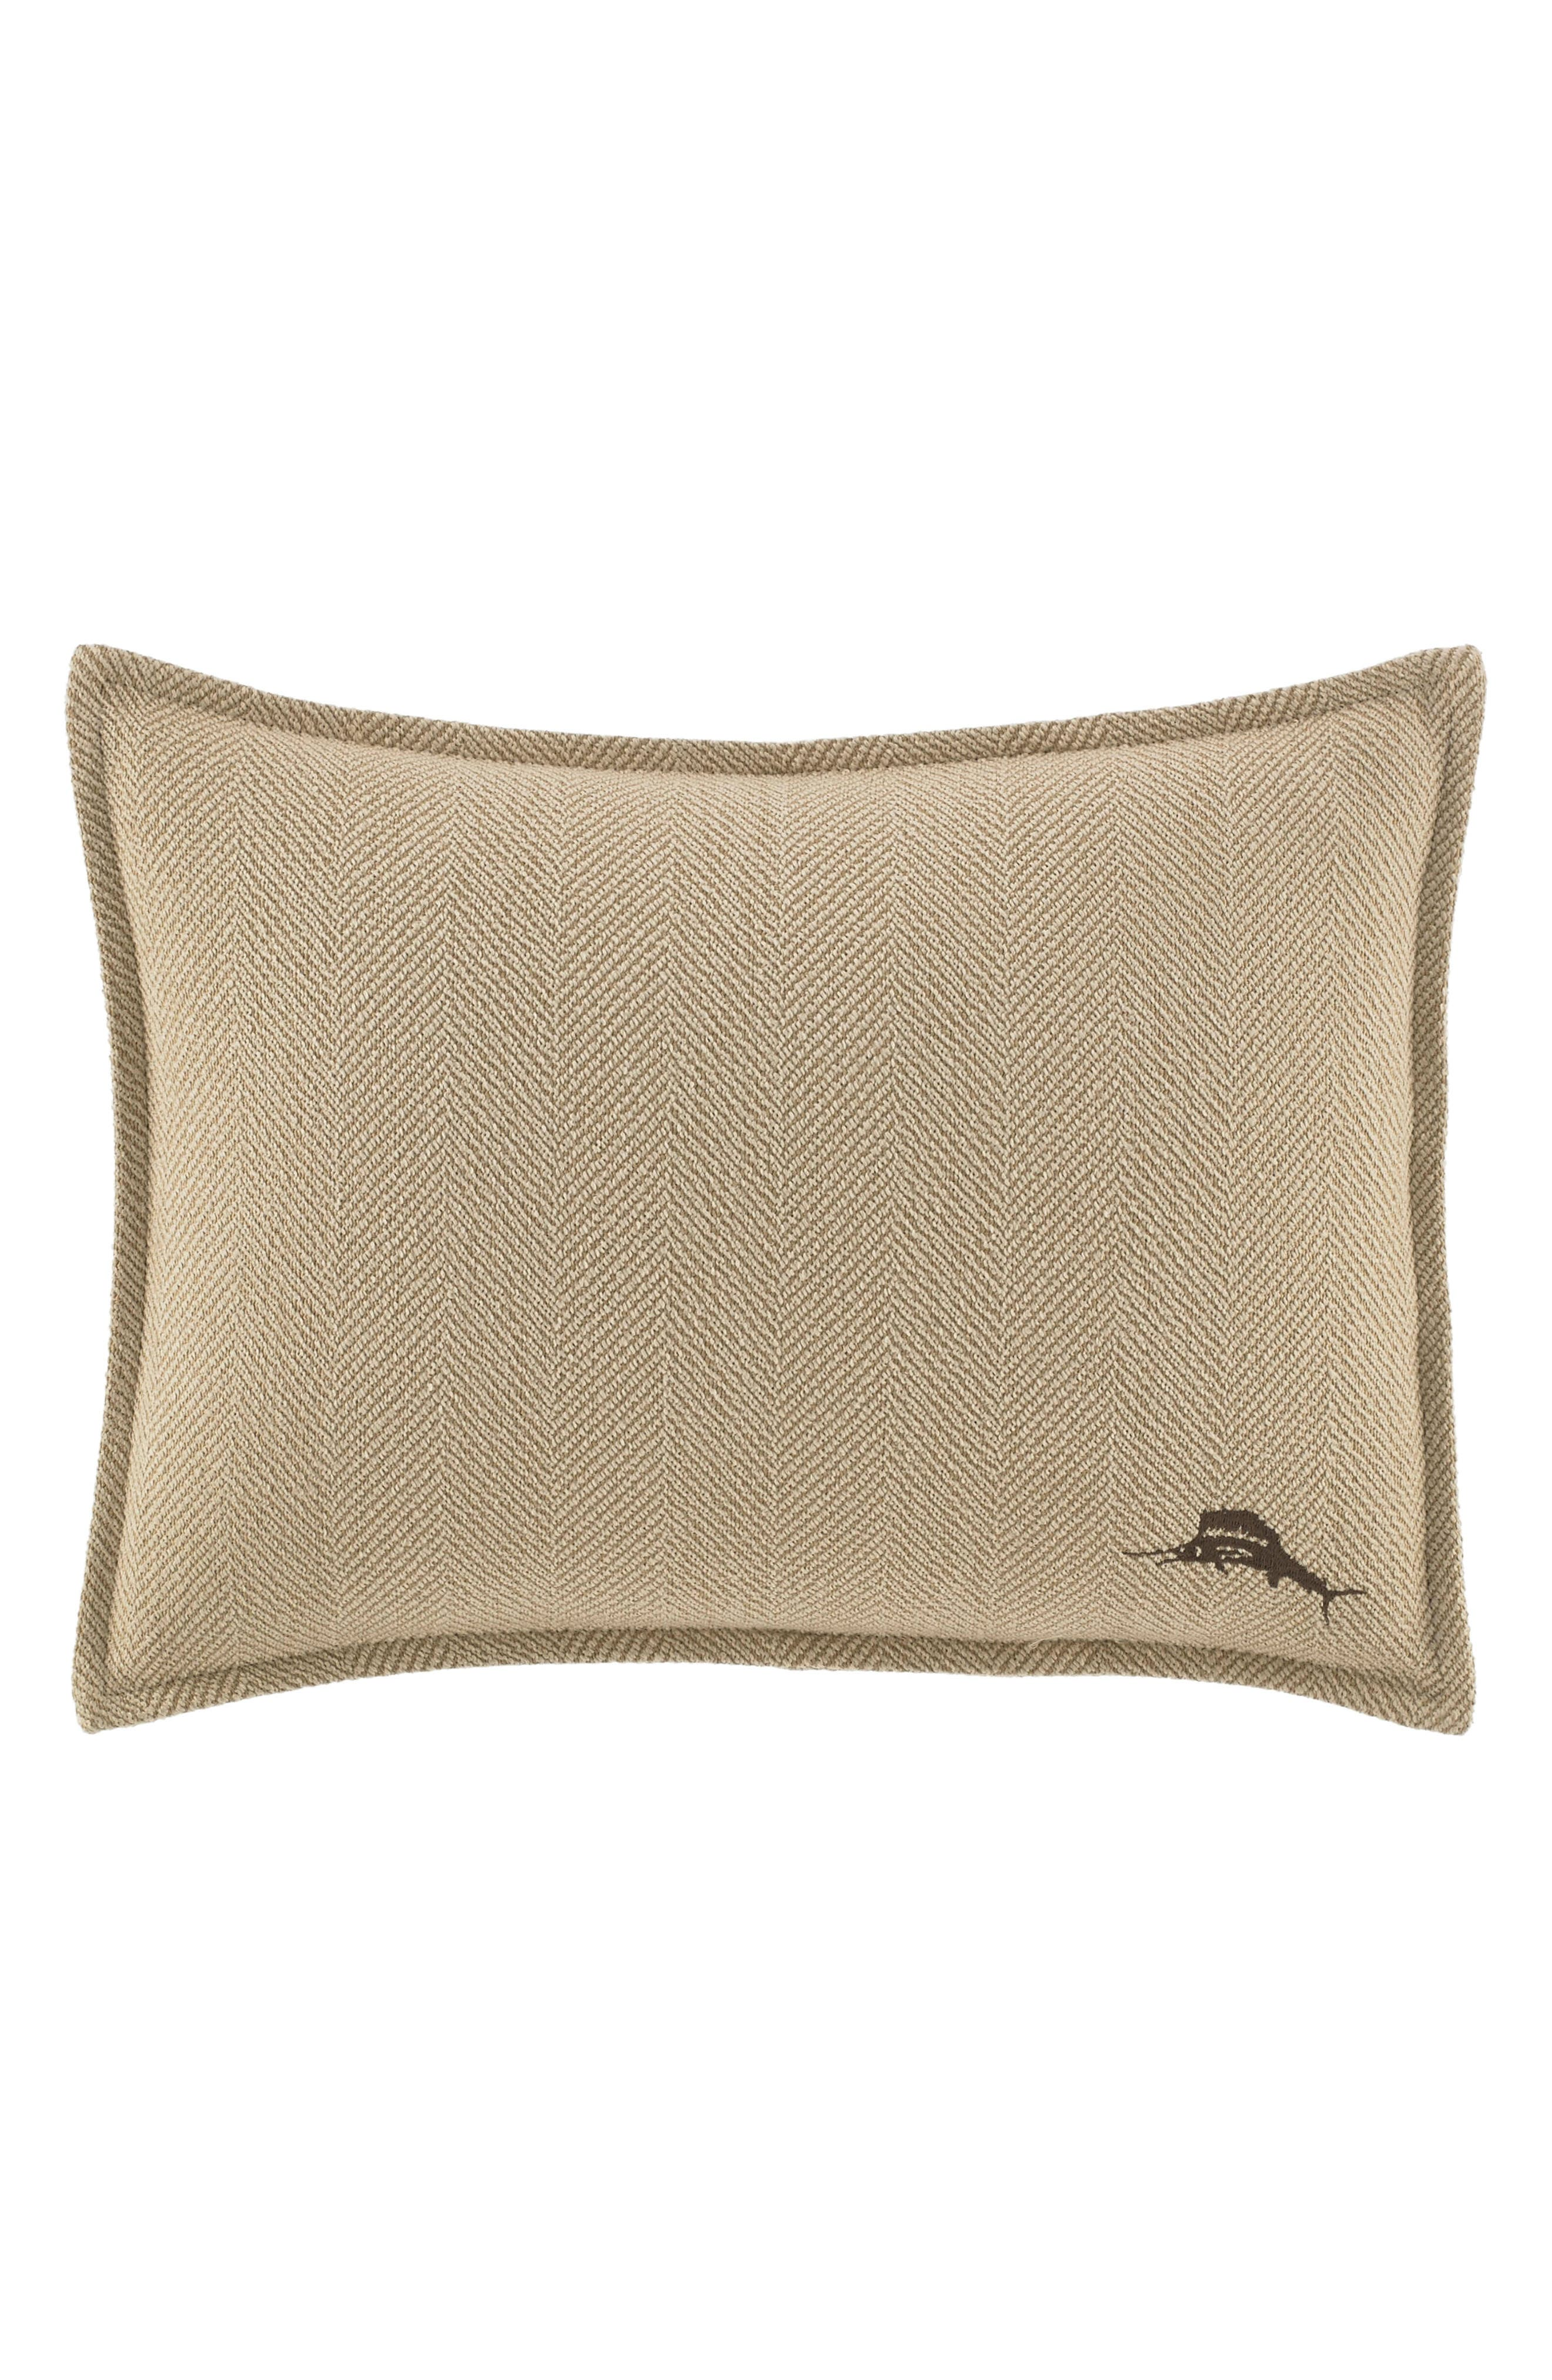 TOMMY BAHAMA Stripe Canvas Accent Pillow, Main, color, 250